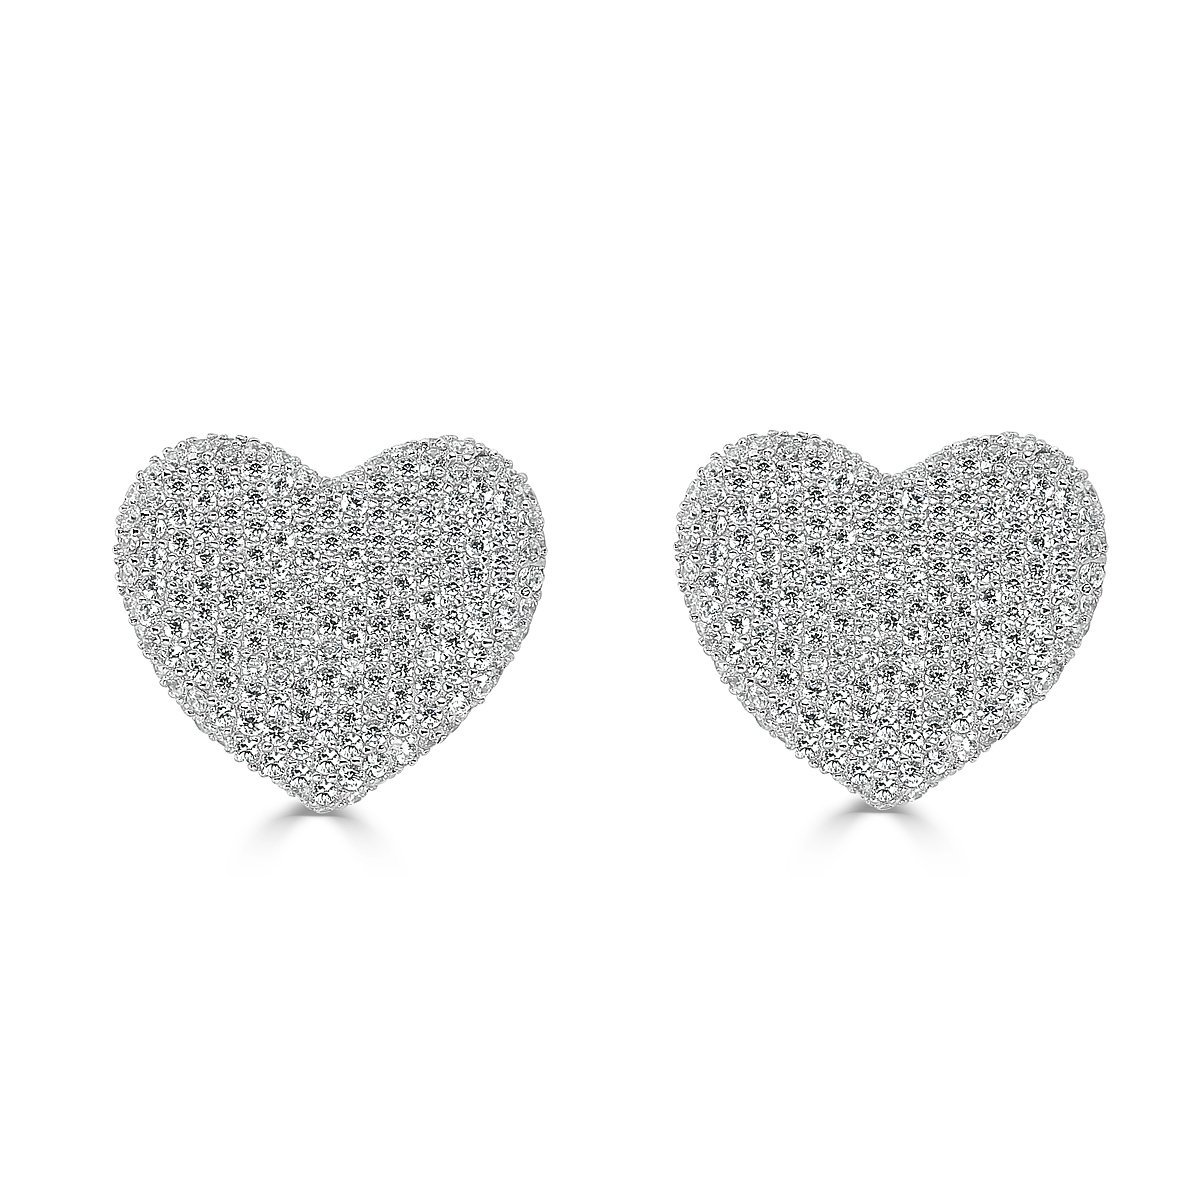 Gold Plated Sterling Silver Cubic Zirconia Pave Hearts Stud Earrings